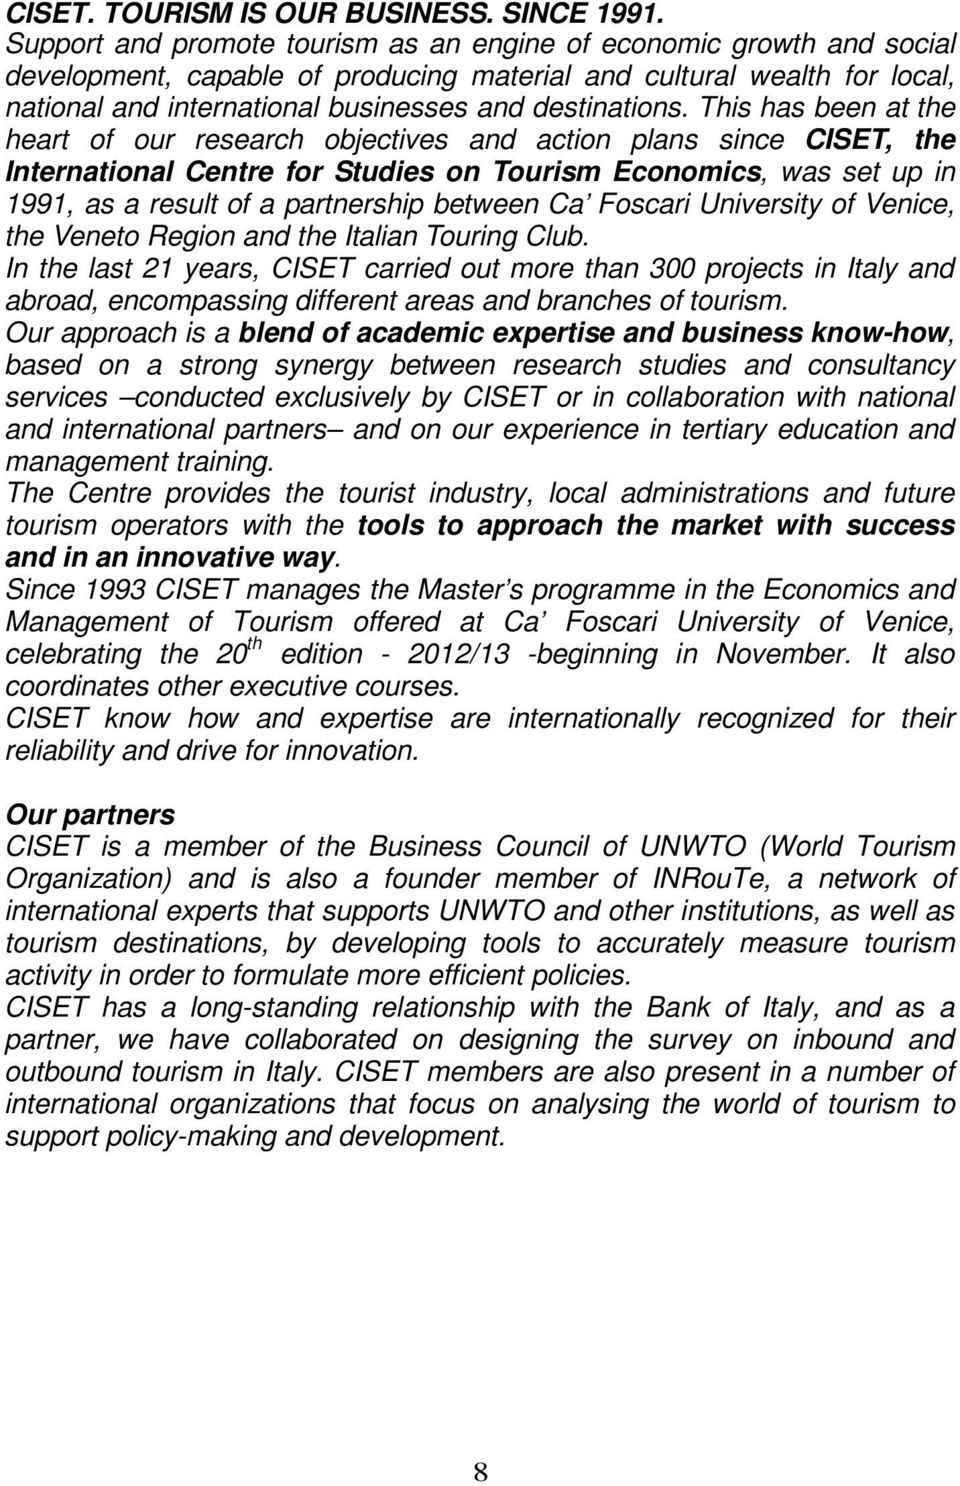 This has been at the heart of our research objectives and action plans since CISET, the International Centre for Studies on Tourism Economics, was set up in 1991, as a result of a partnership between